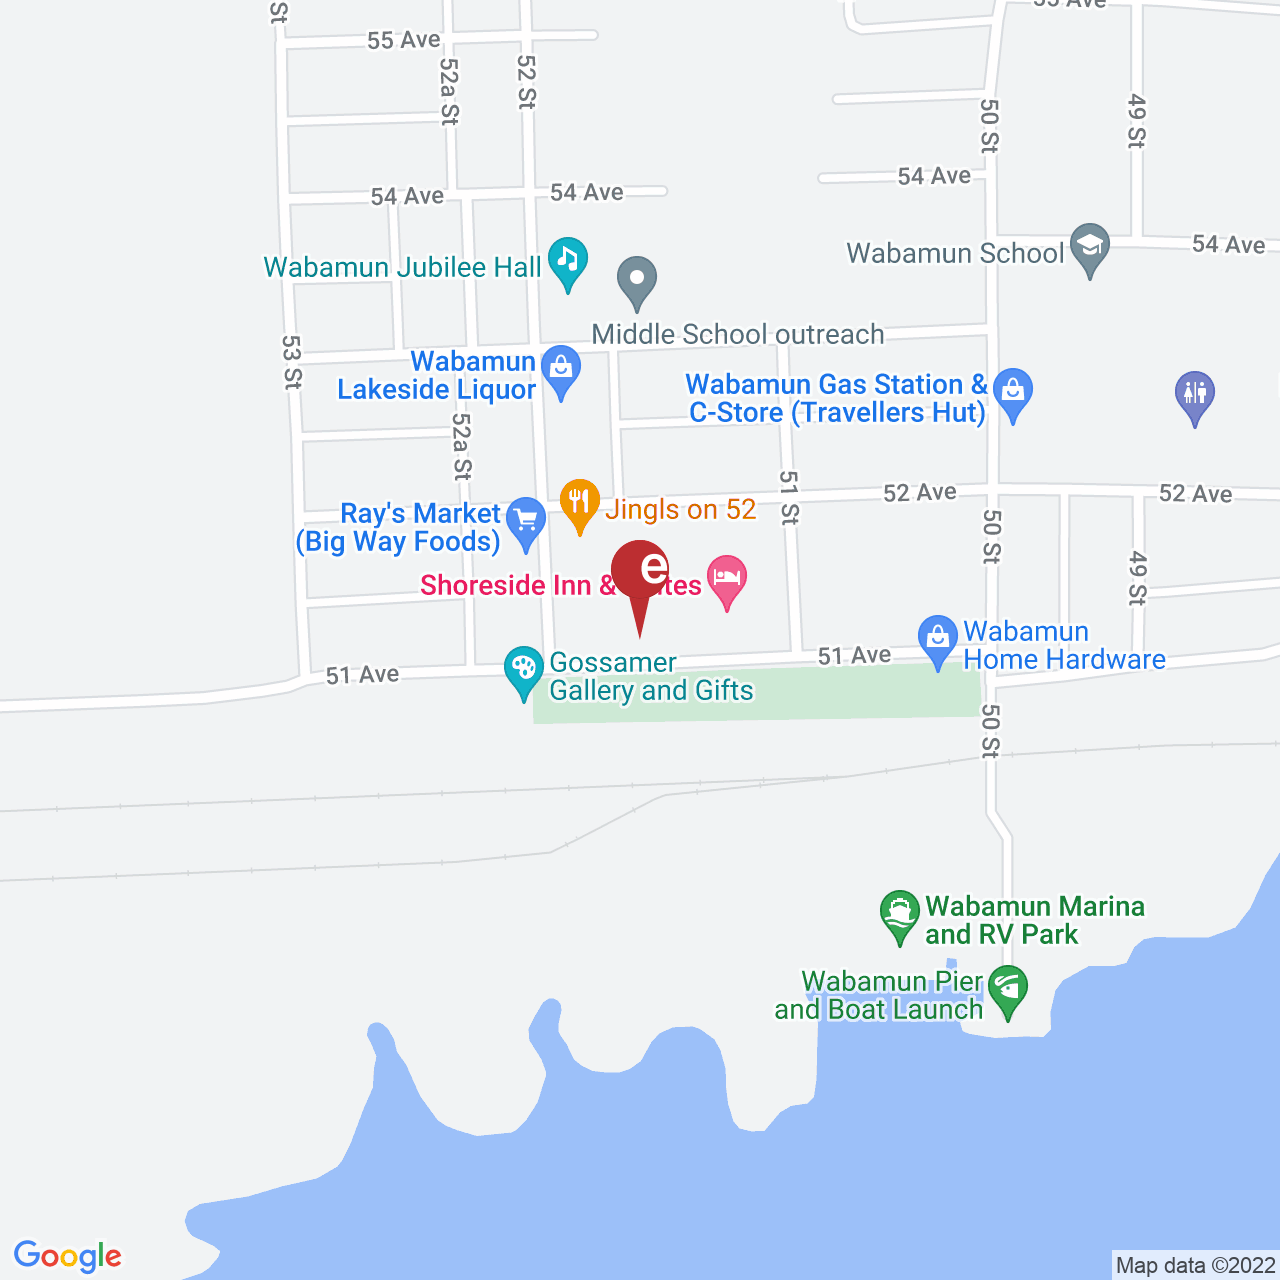 Street map for Mary Jane on Penny Lane, 5126 51 Ave., Wabamun AB